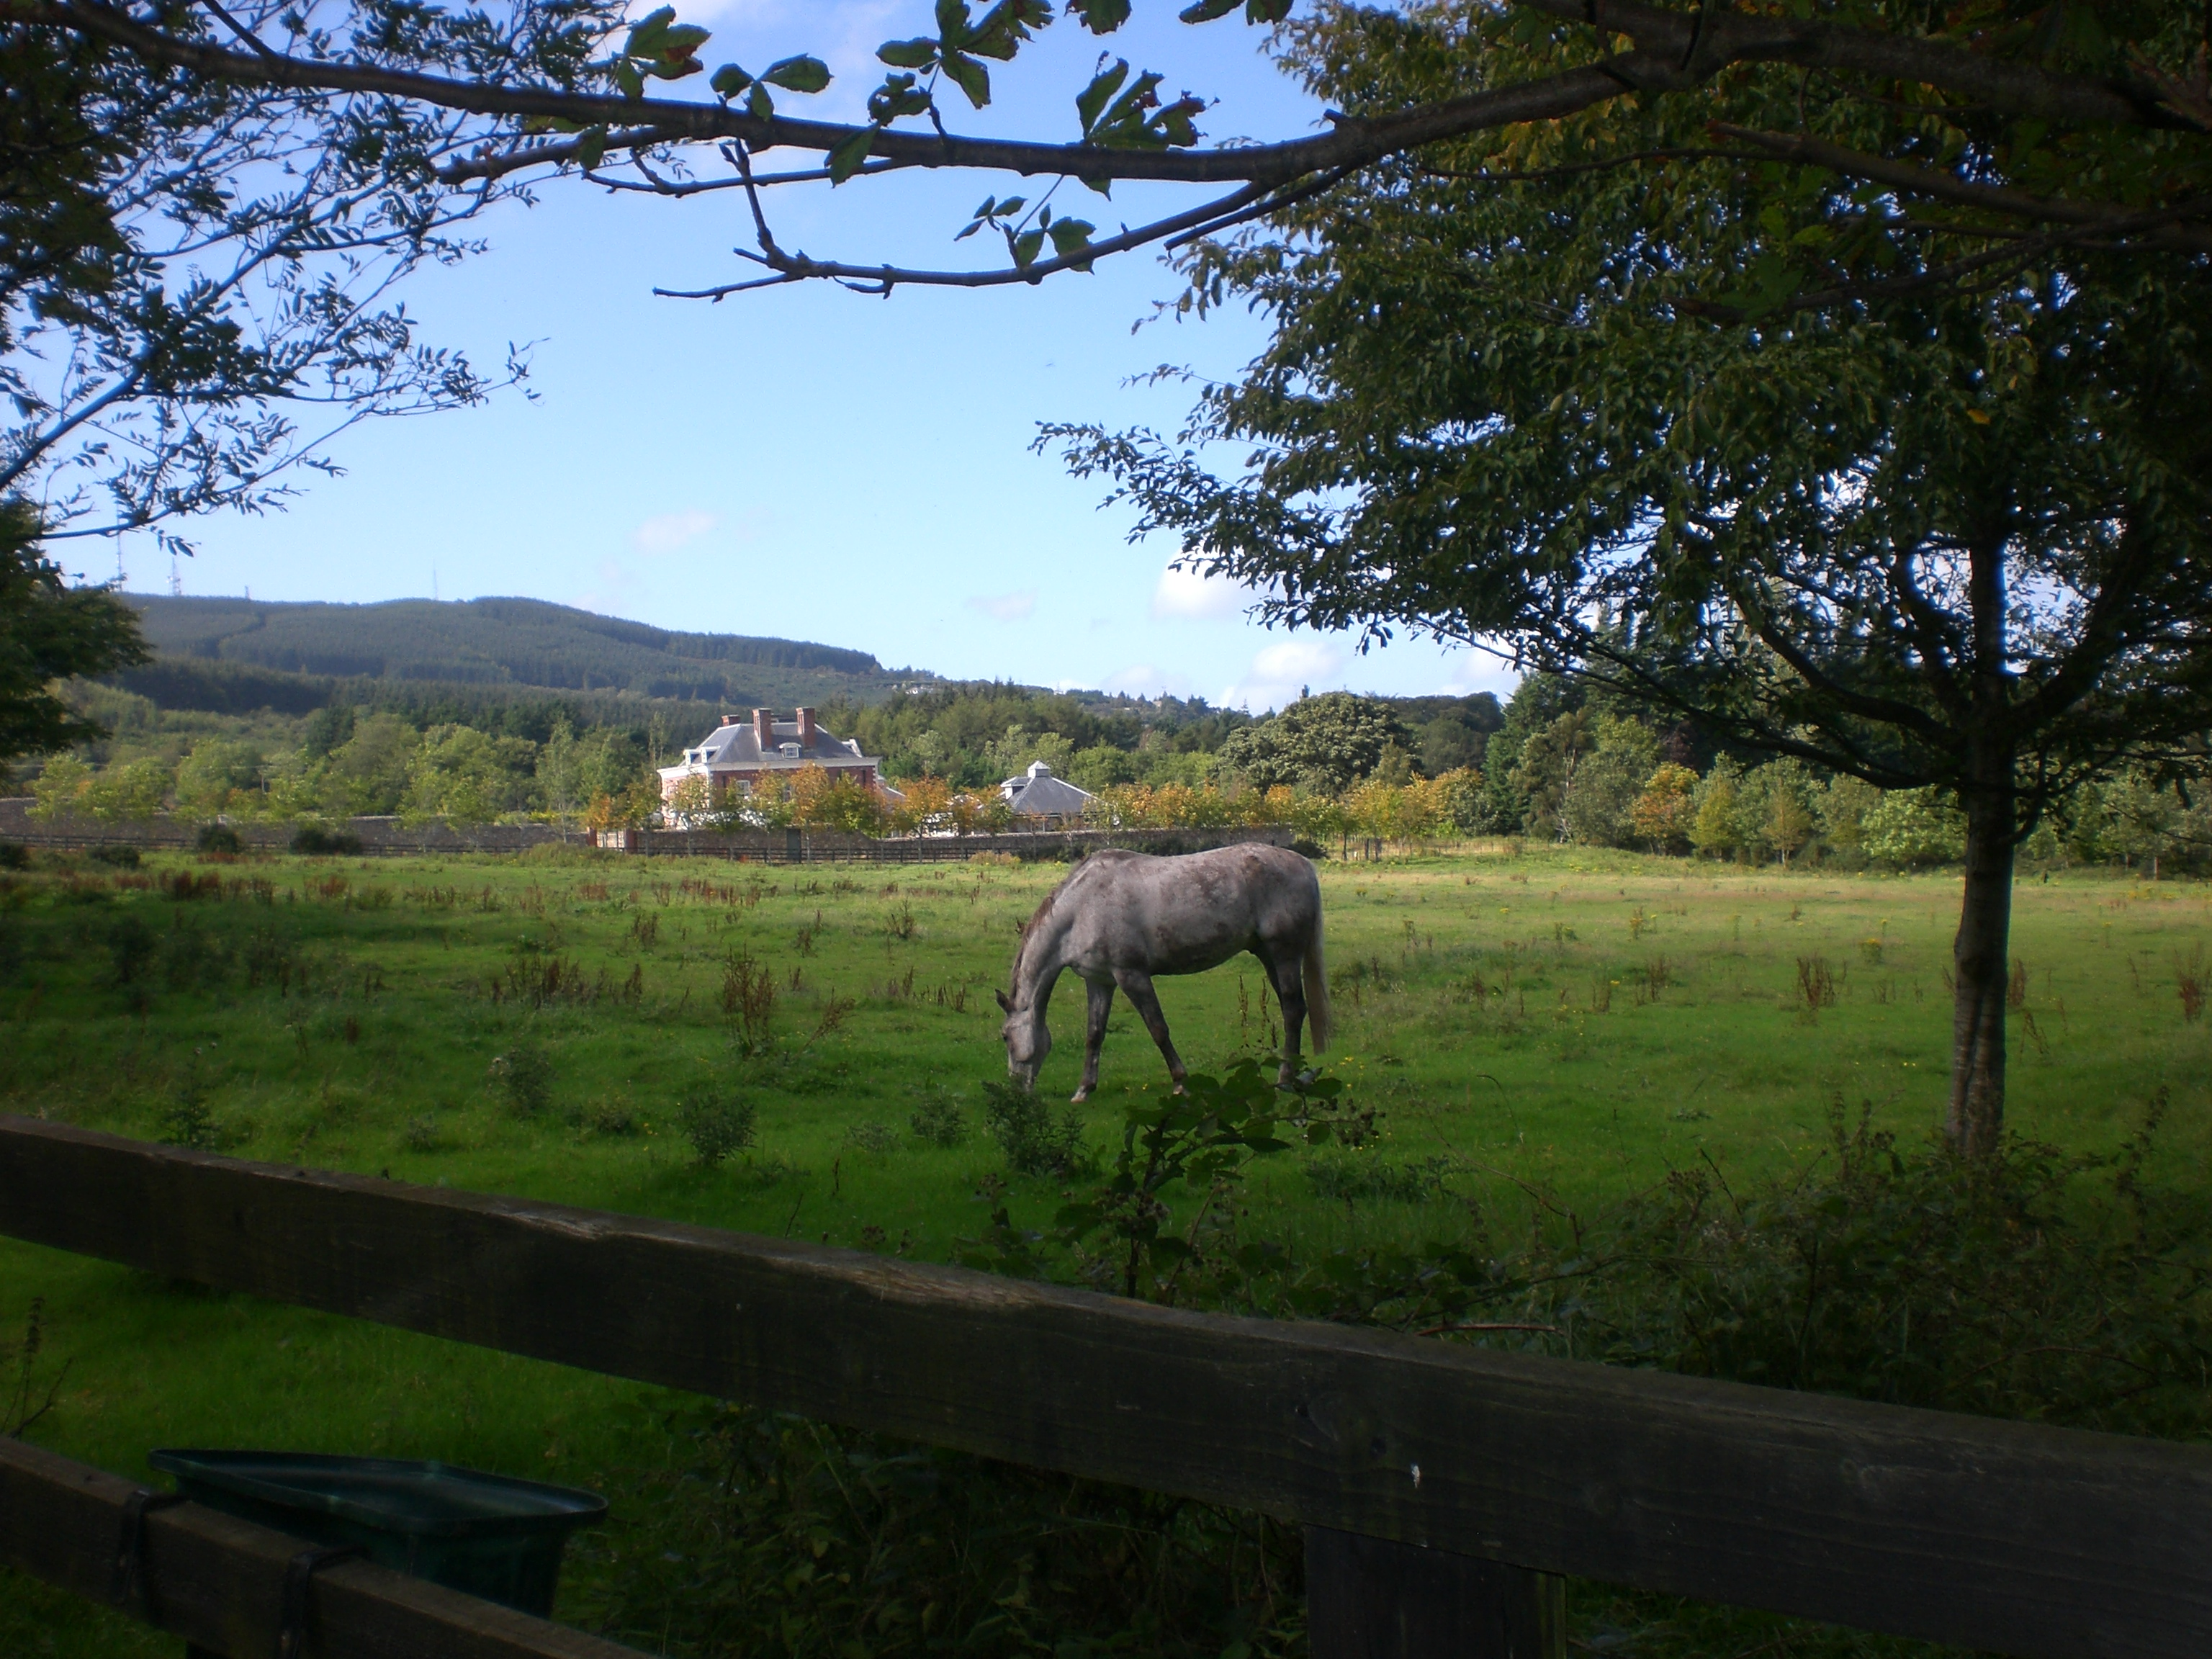 Out and about horse riding